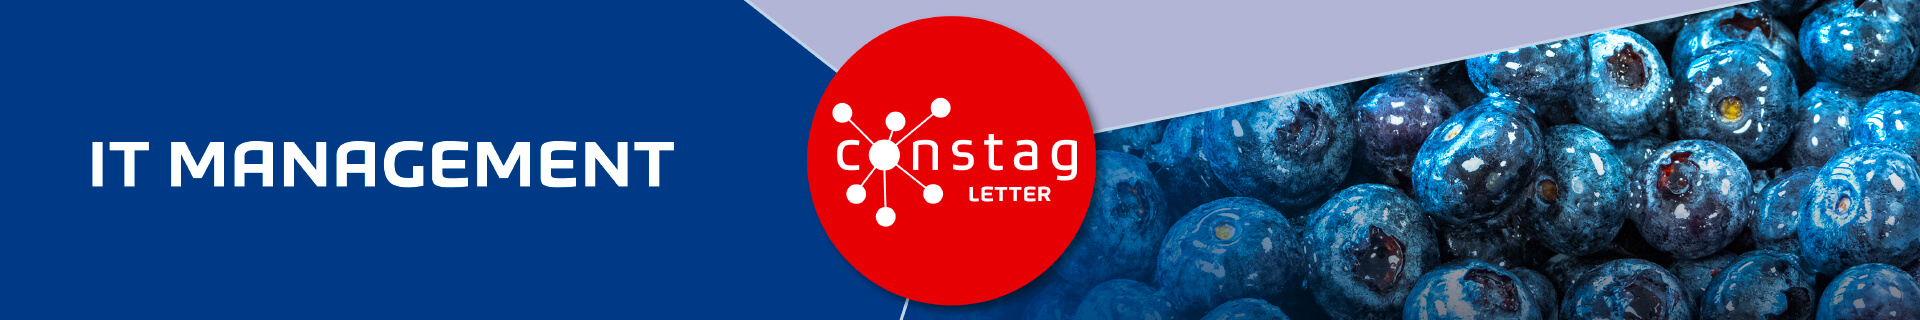 ConstagLETTER IT Management